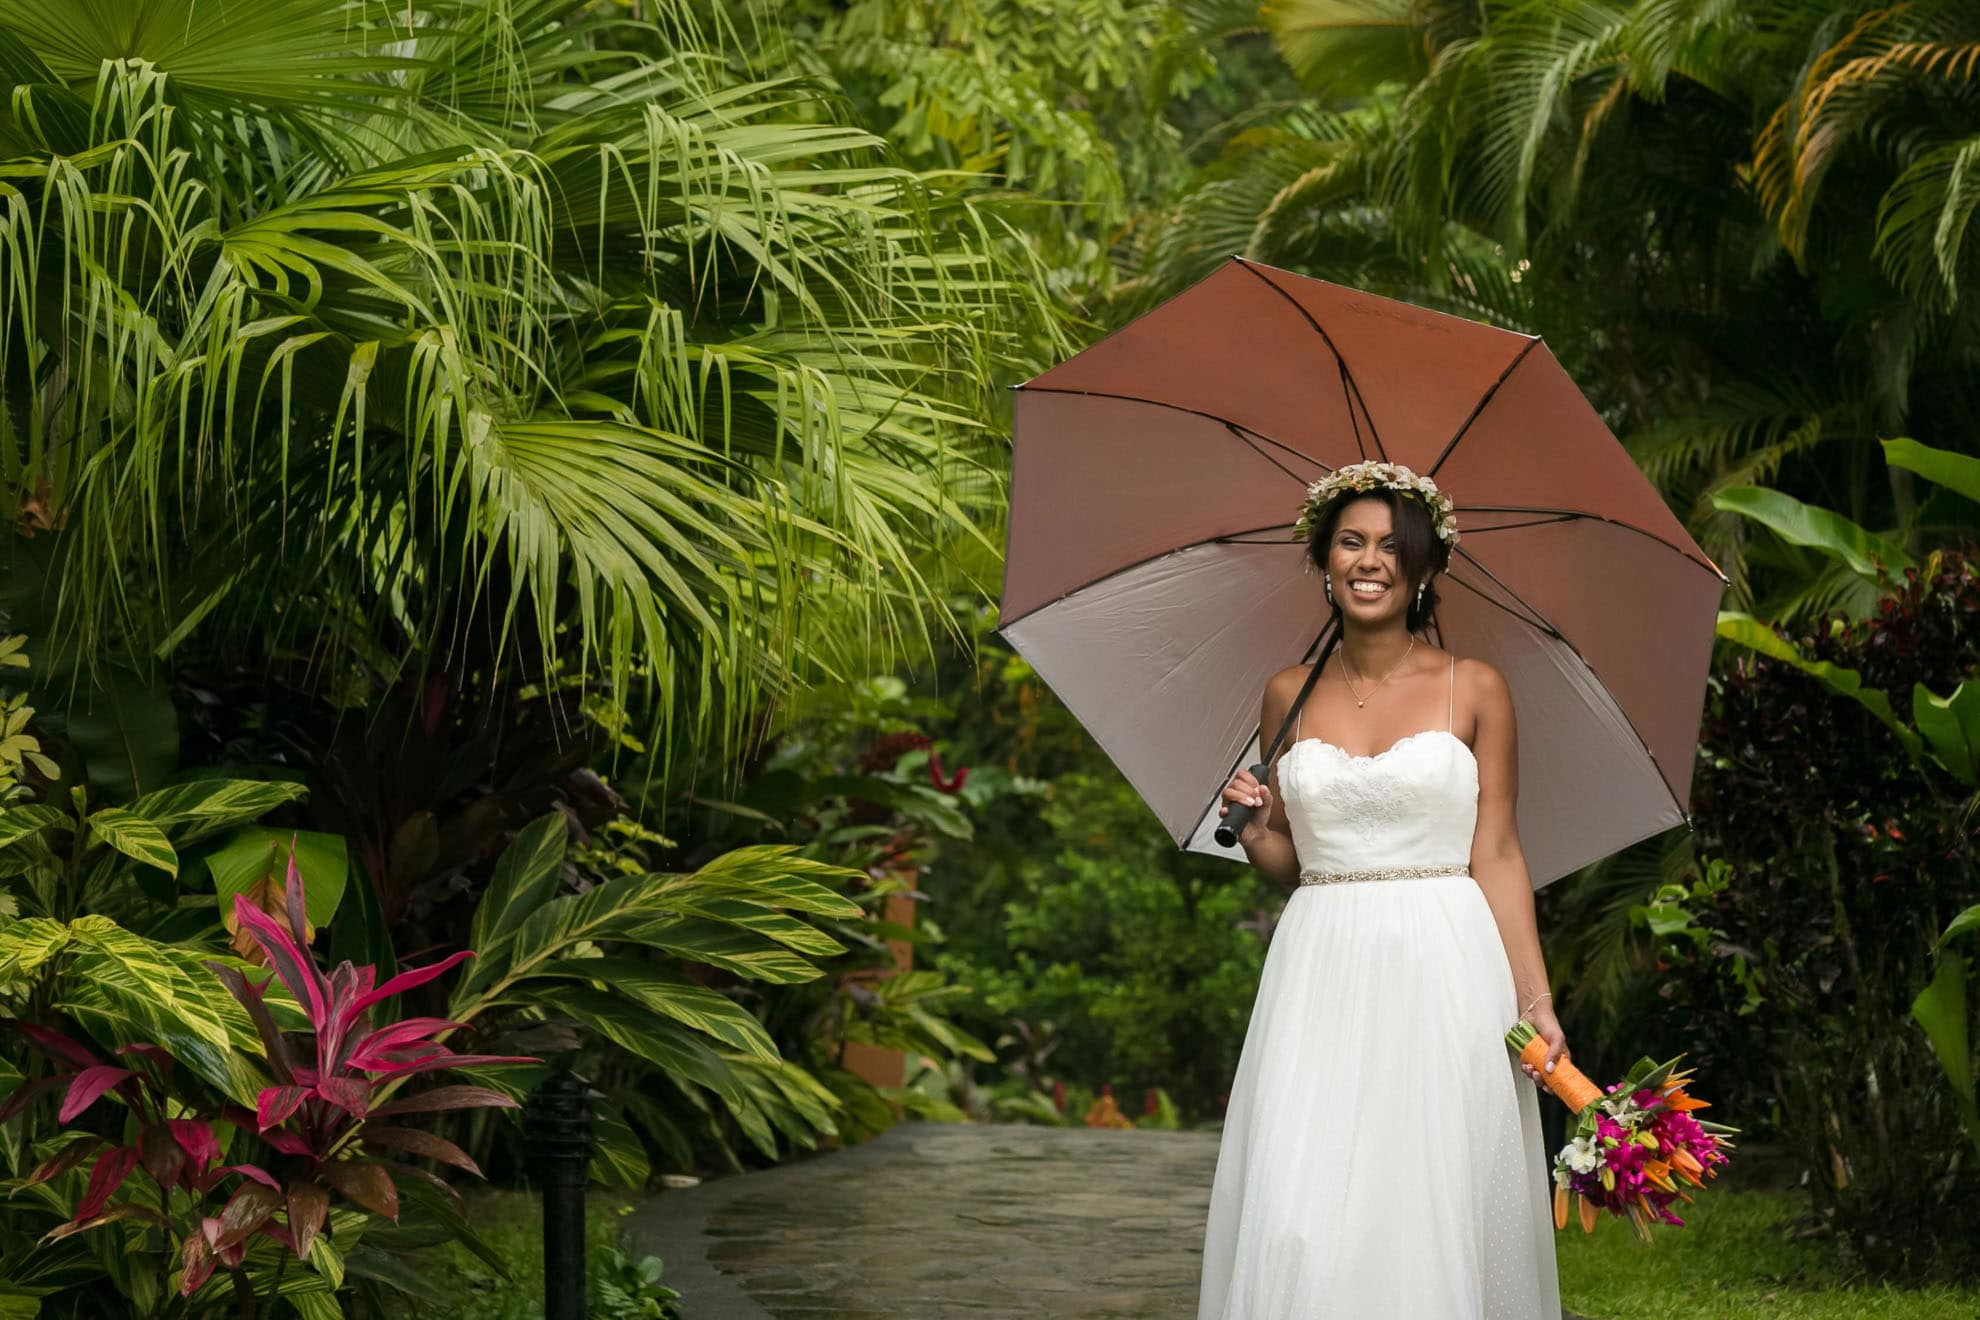 Bride with umbrella: the greenery is lush for a volcano wedding